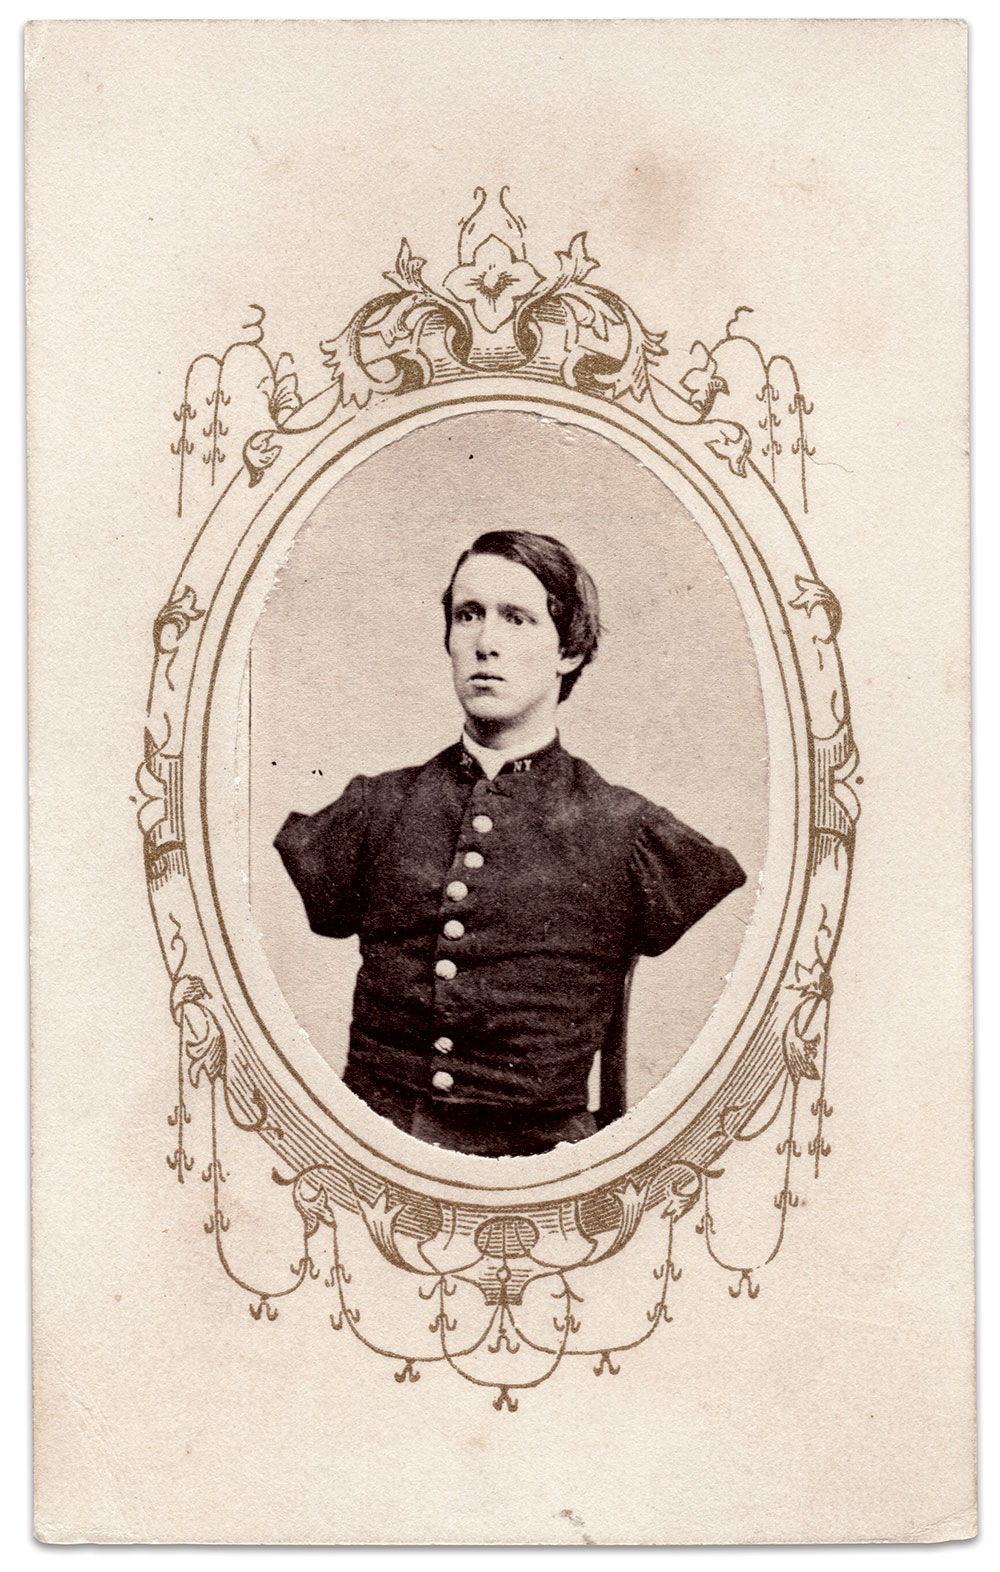 AID FOR AN AMPUTEE: Evans helped Sgt. Alfred A. Stratton of the 147th New York Infantry, who suffered a war wound that resulted in the loss of both arms, by holding two fundraisers on his behalf. Author's collection.